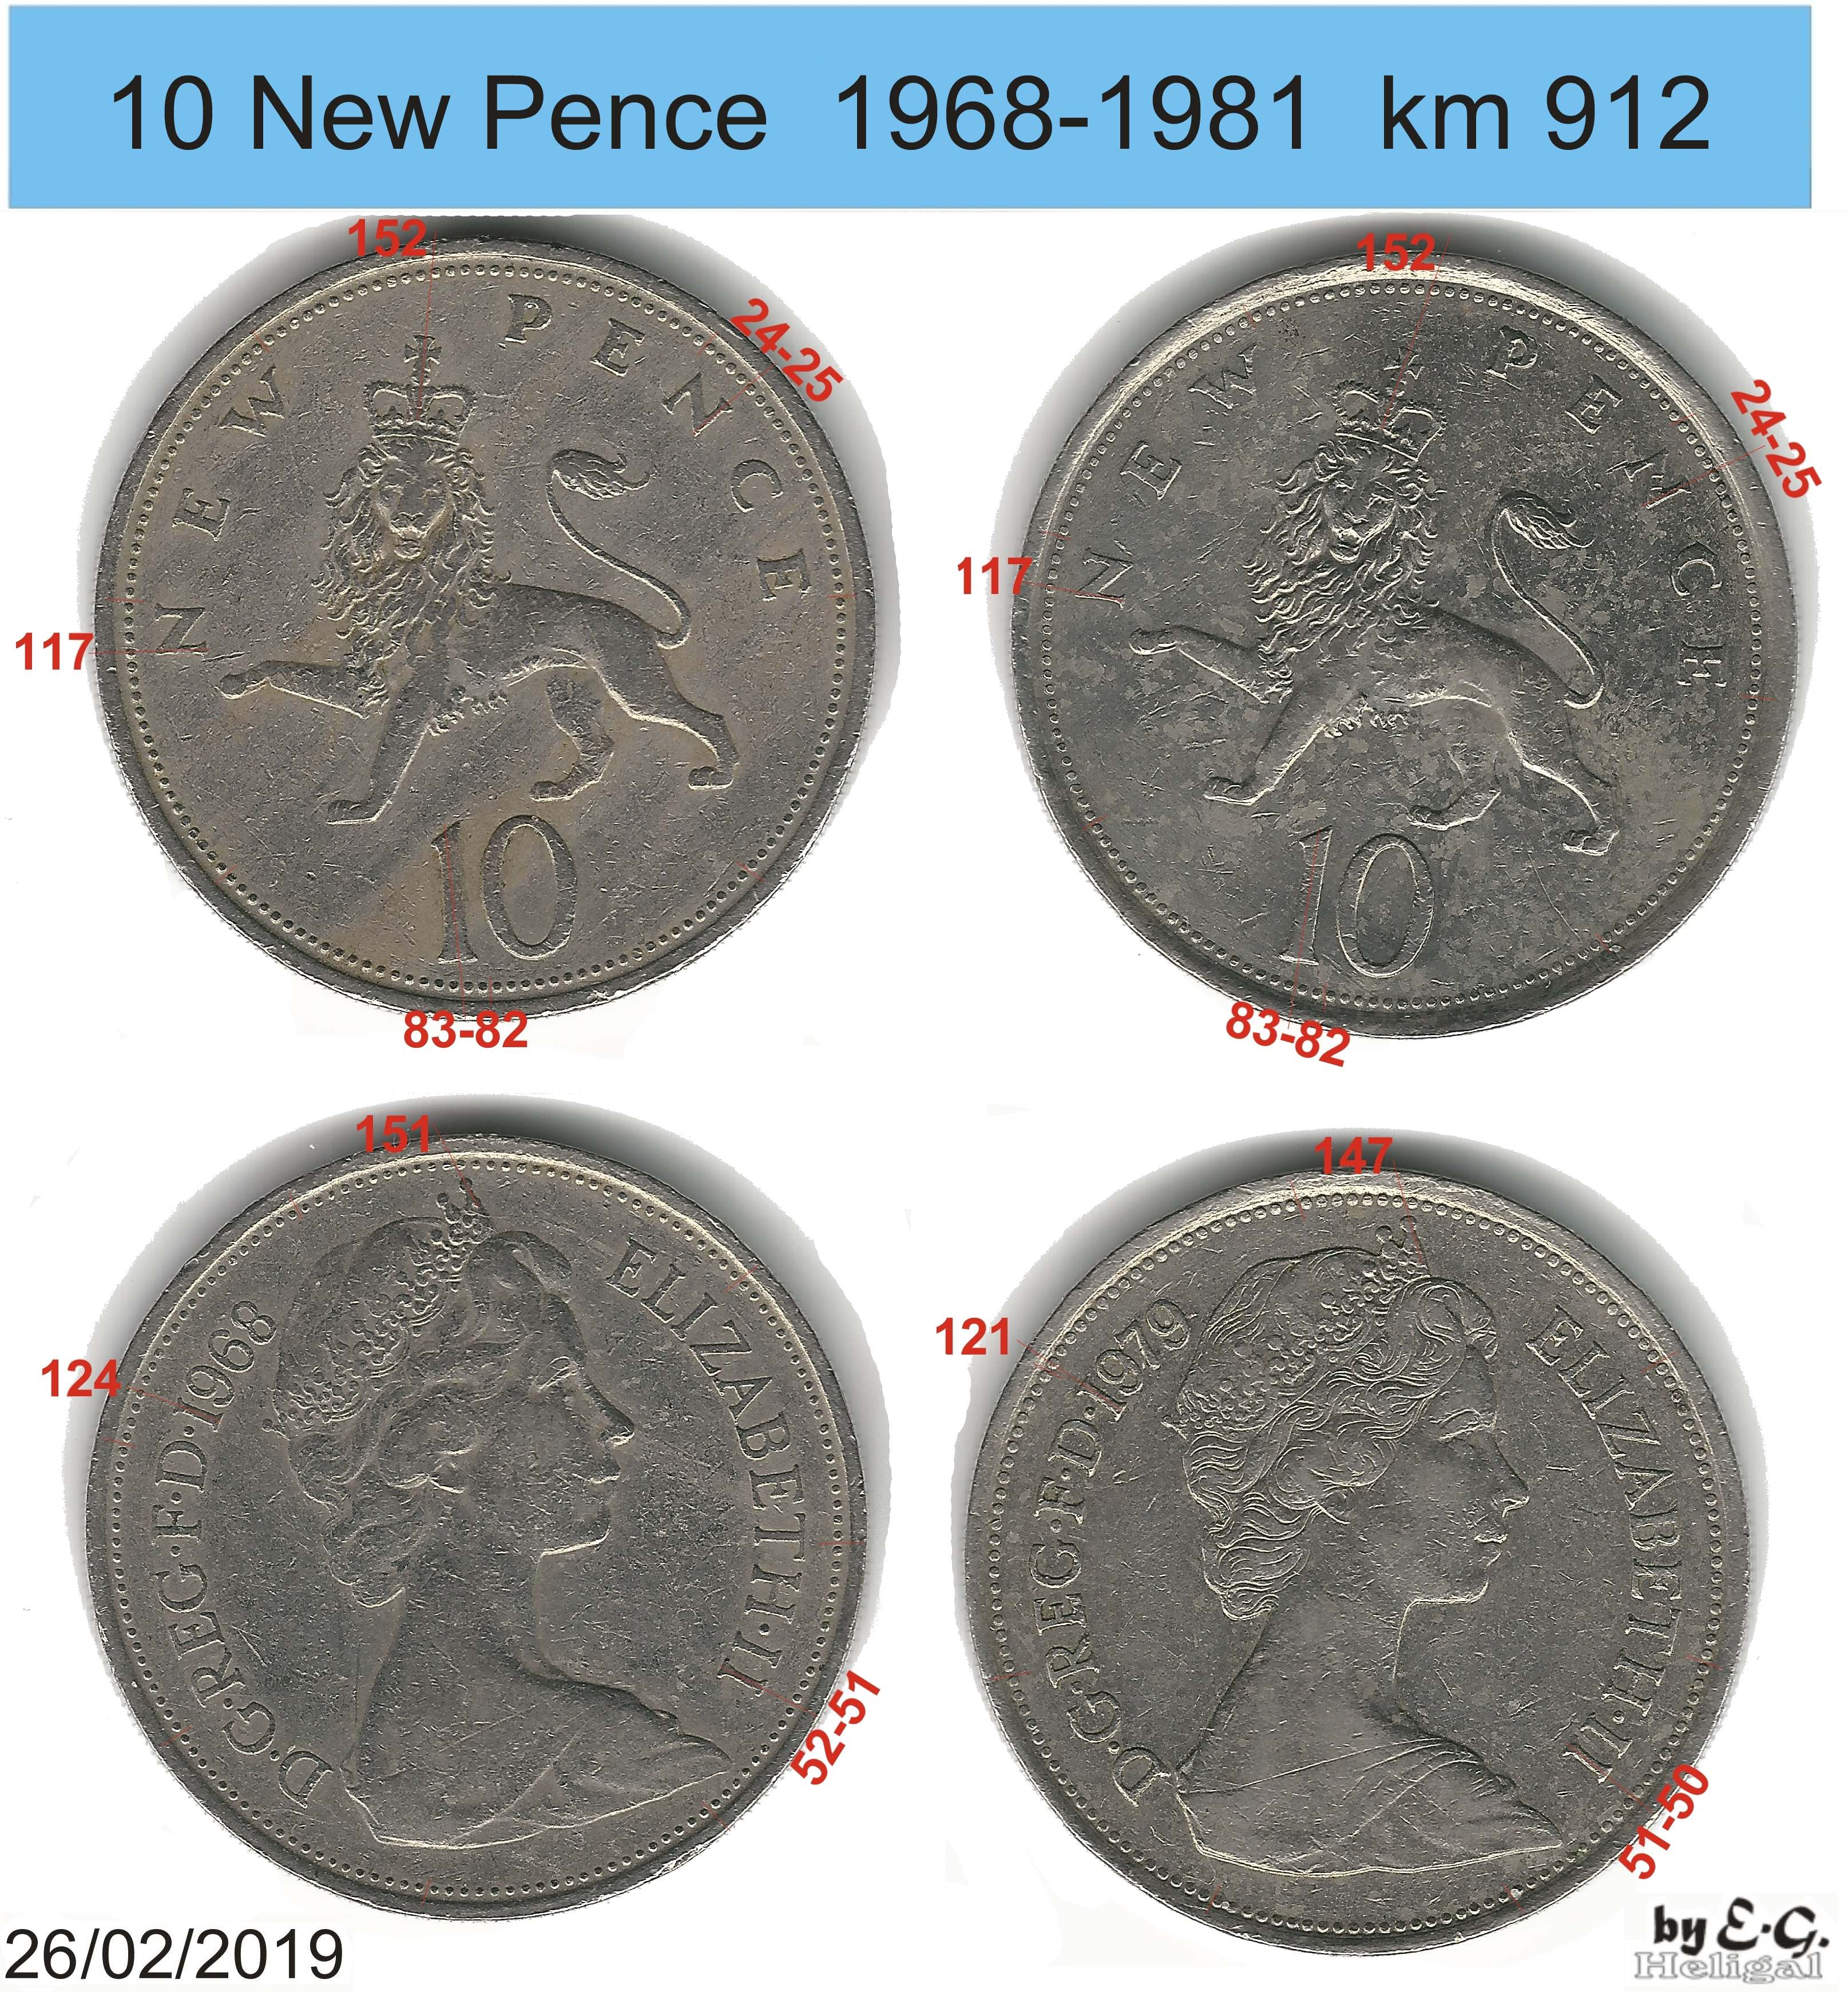 UK//GB 10 NEW PENCE VARIOUS DATES GREAT PRICE!